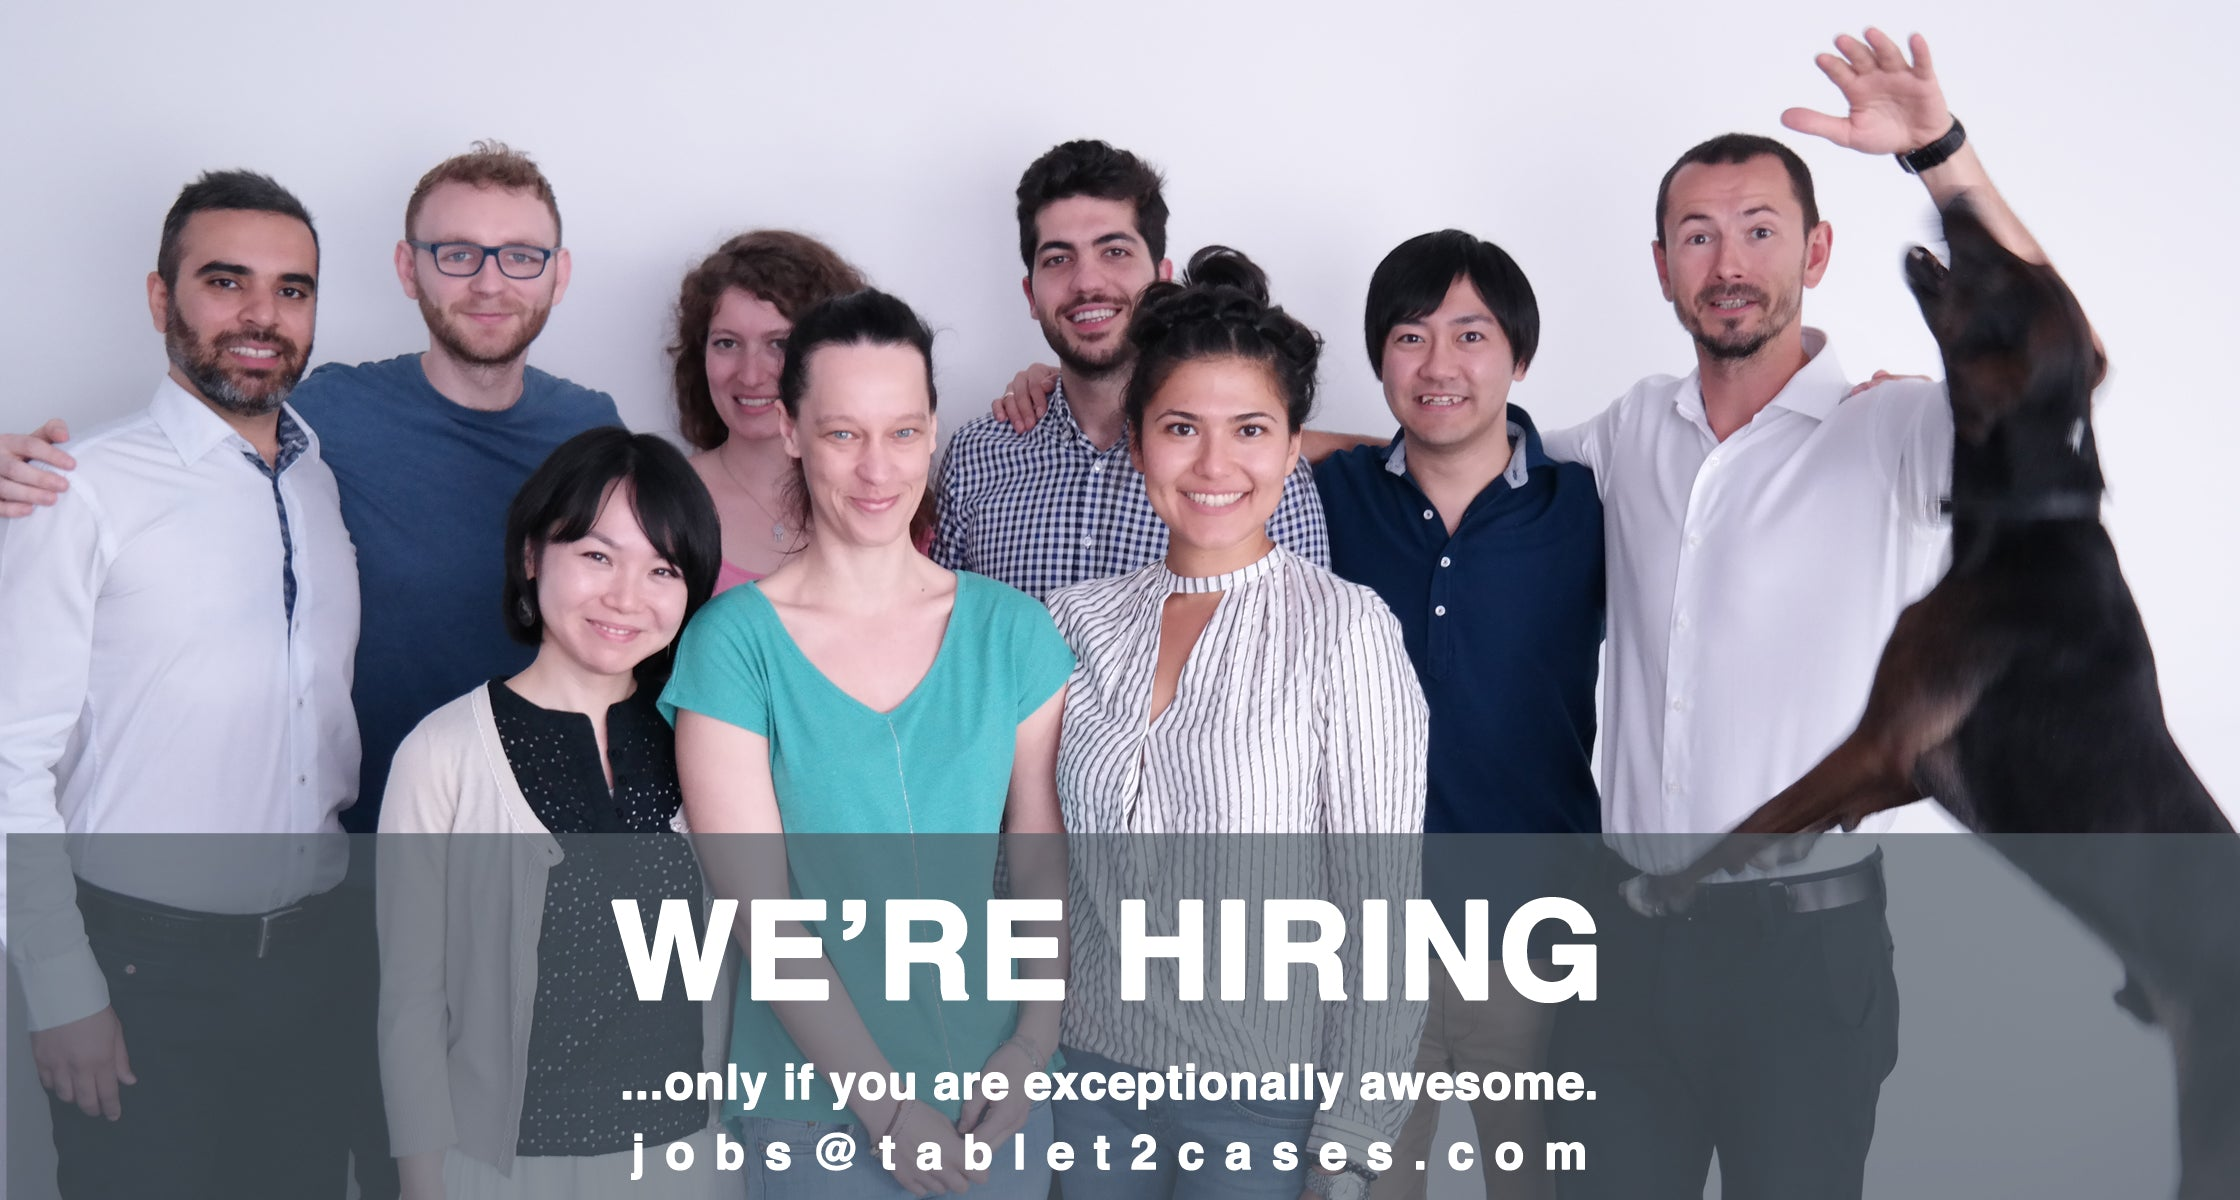 Tablet2Cases is hiring an Office Administrator